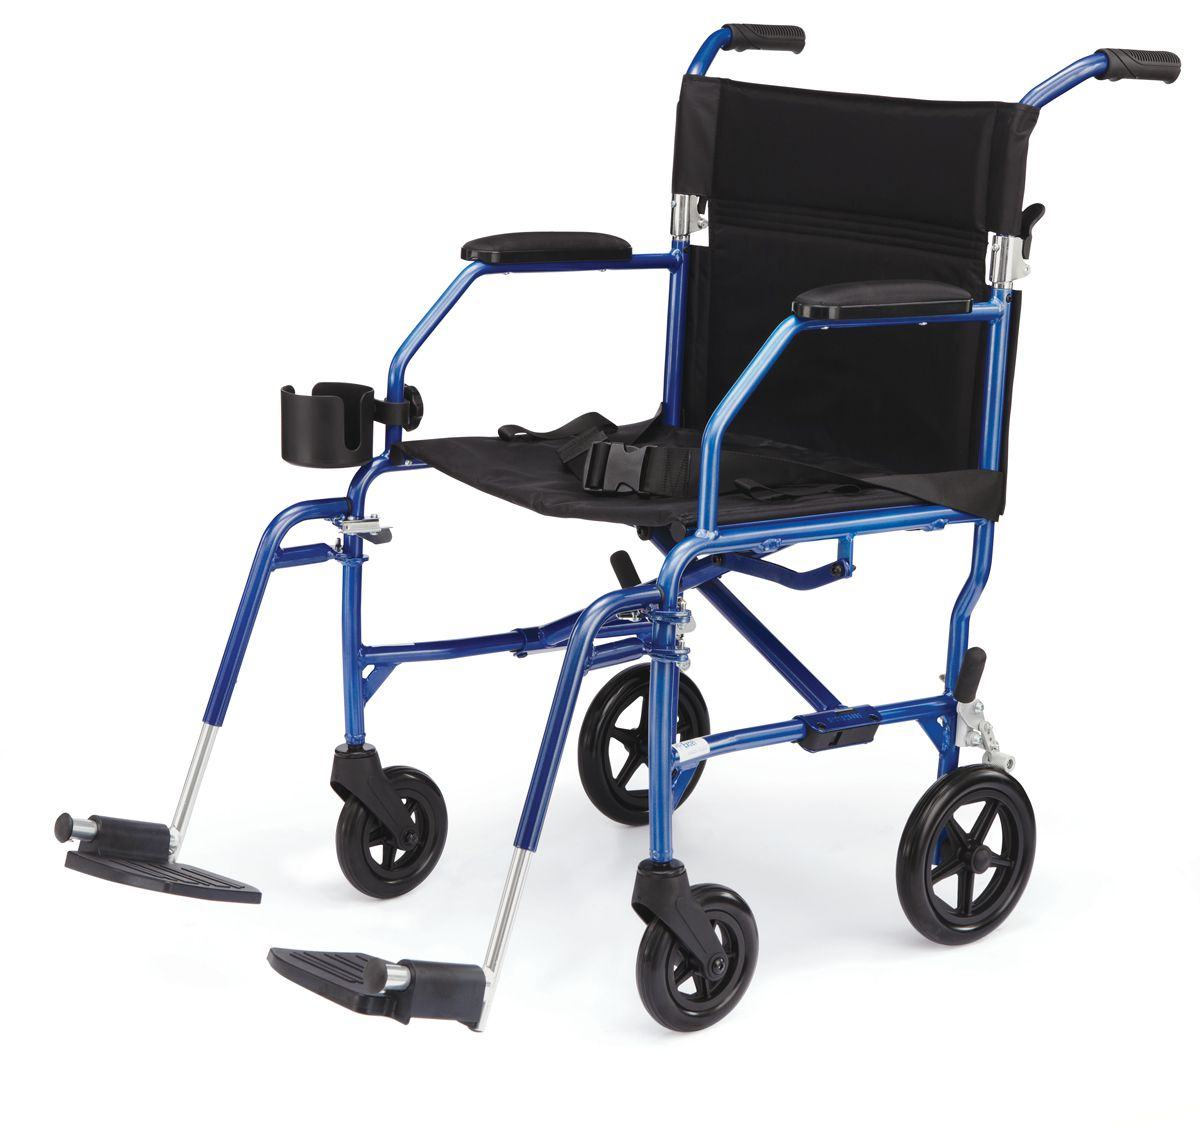 bariatric transport chair 24 seat kitchen covers amazon medline freedom wheelchair blu retail